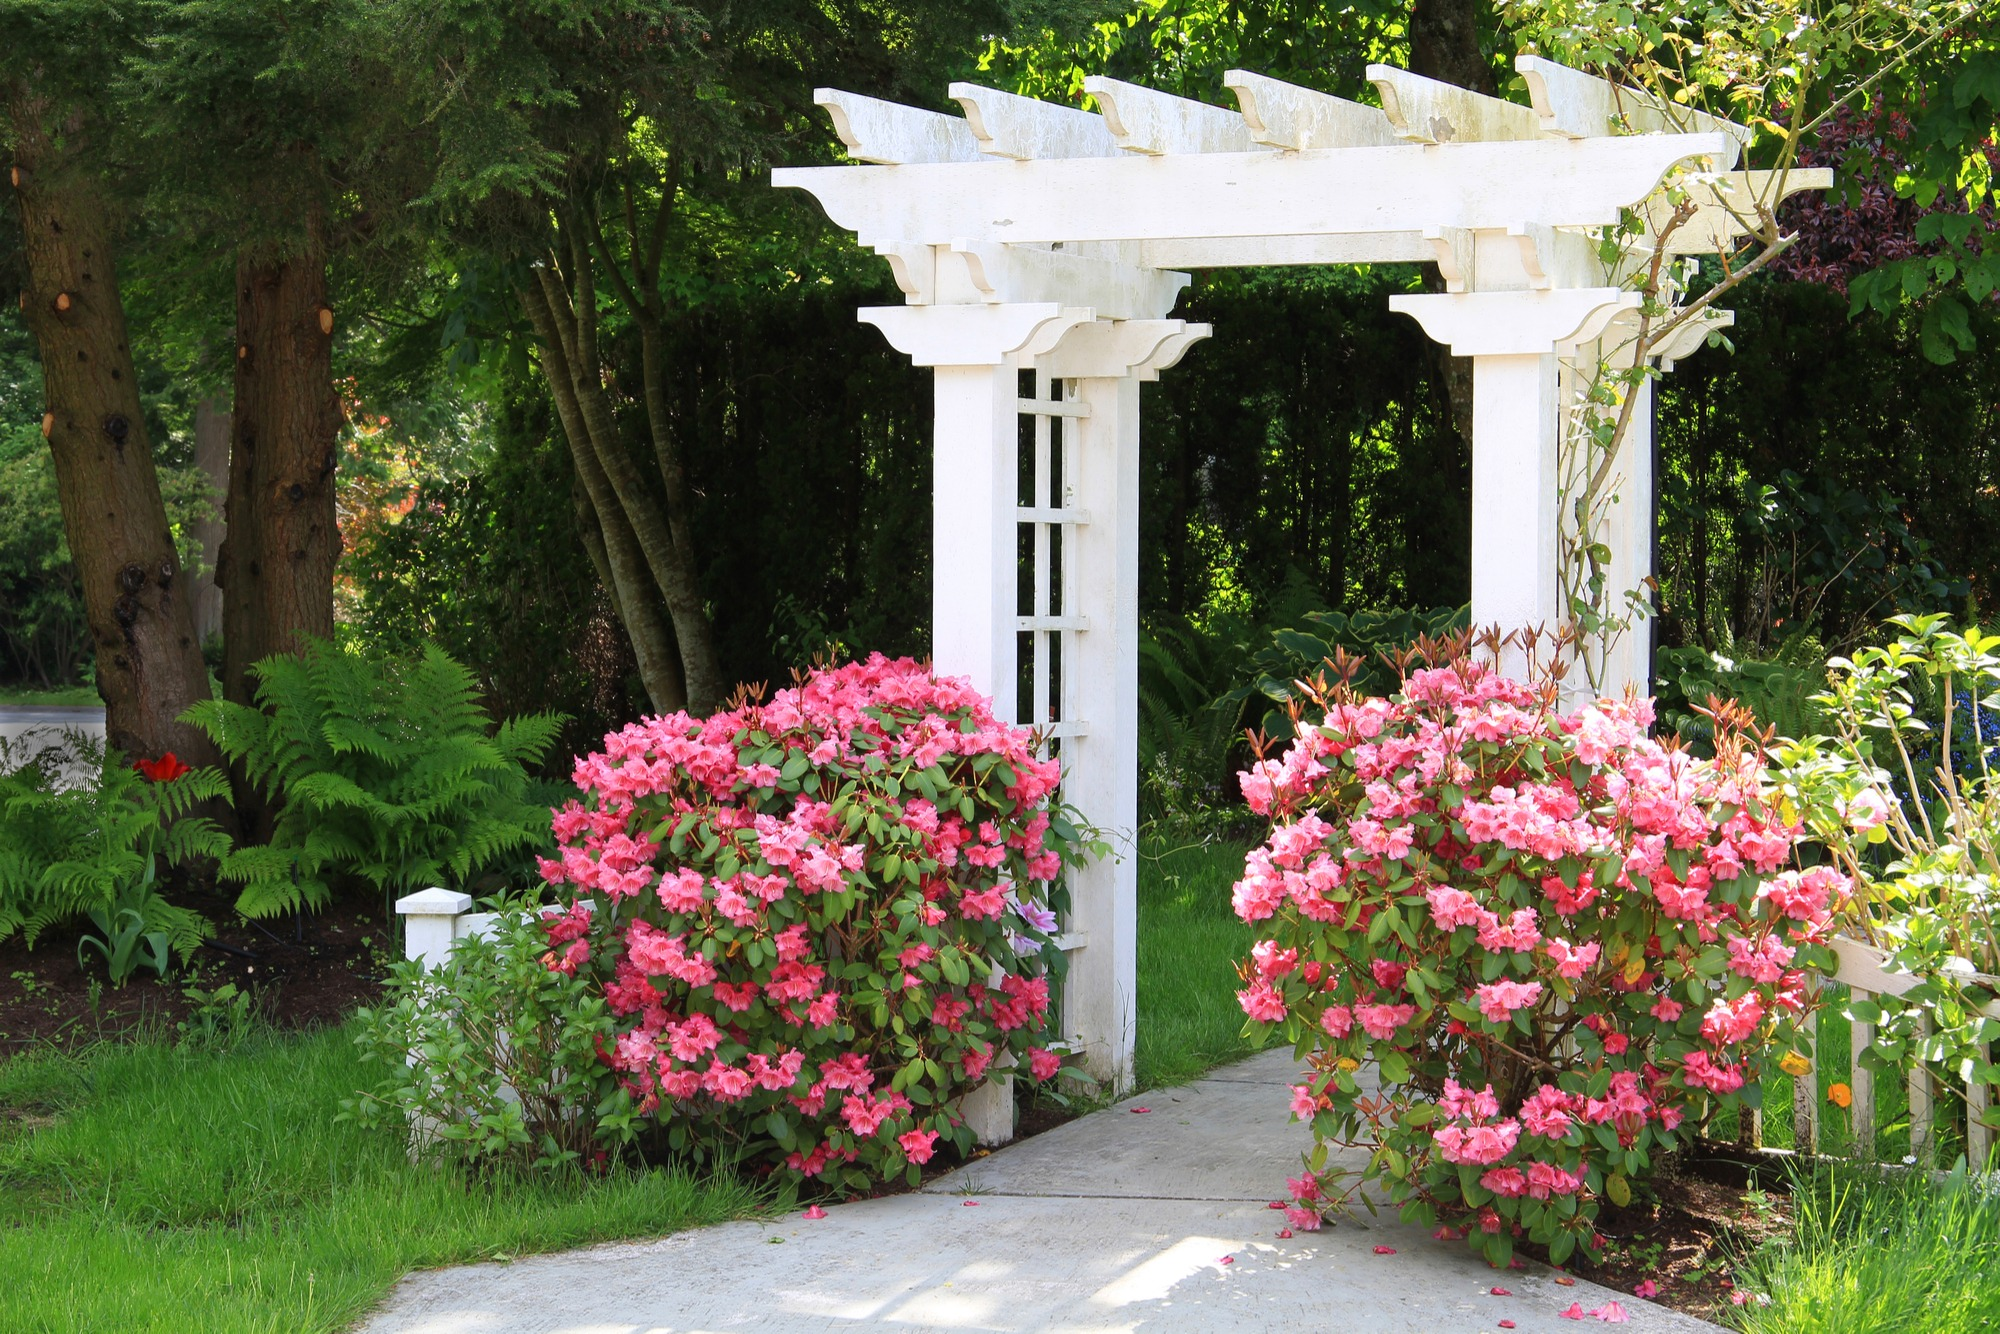 arbor for shade